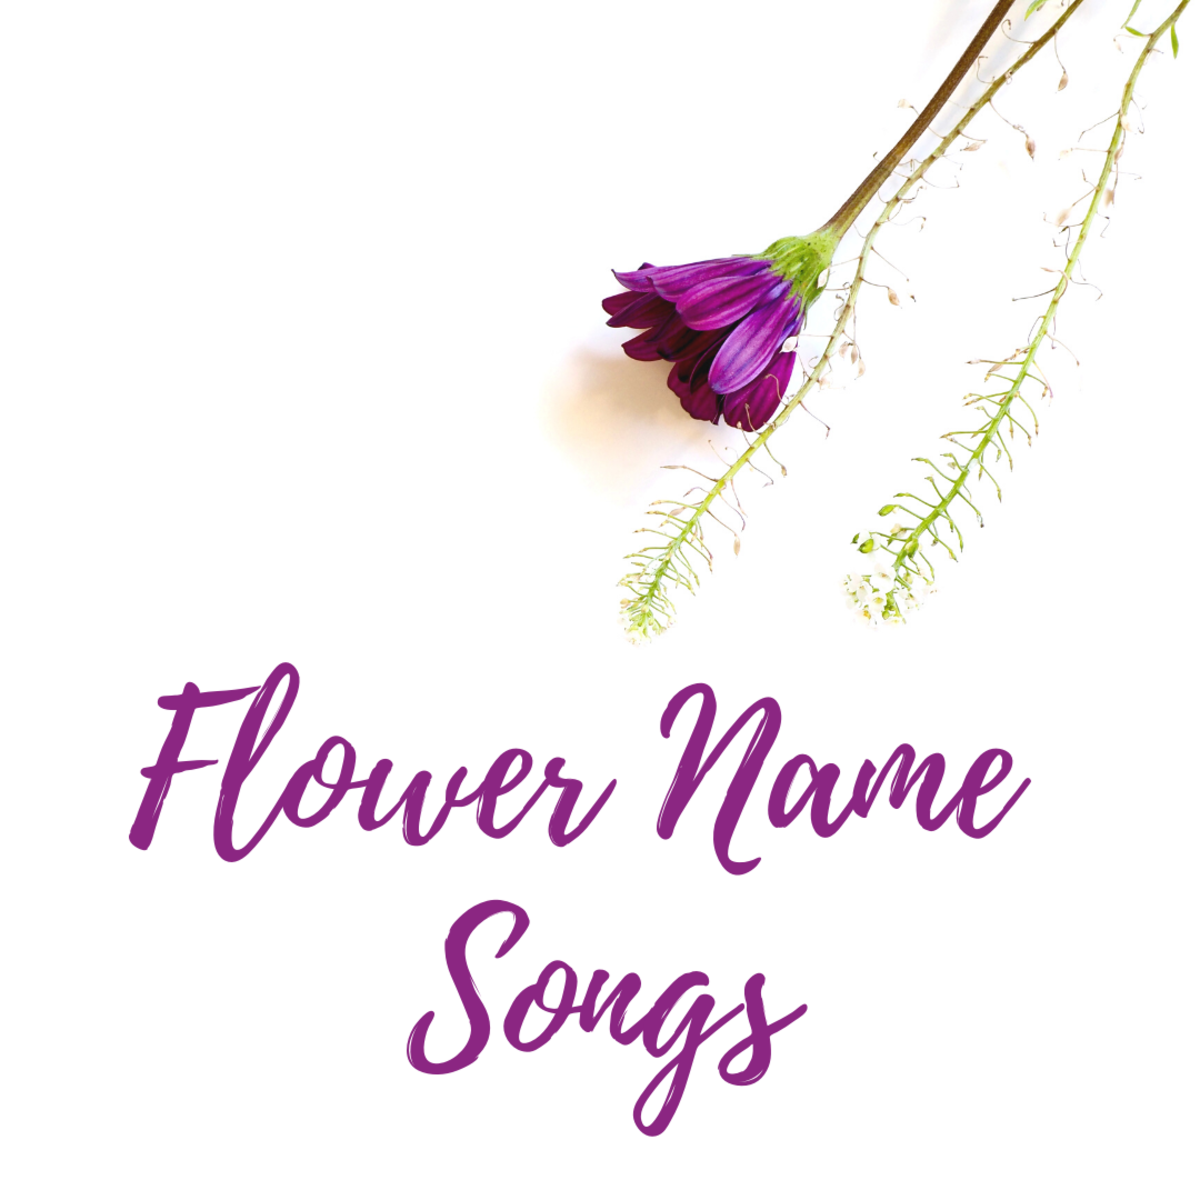 What are the best songs with flower names in the title? Read on to find out!